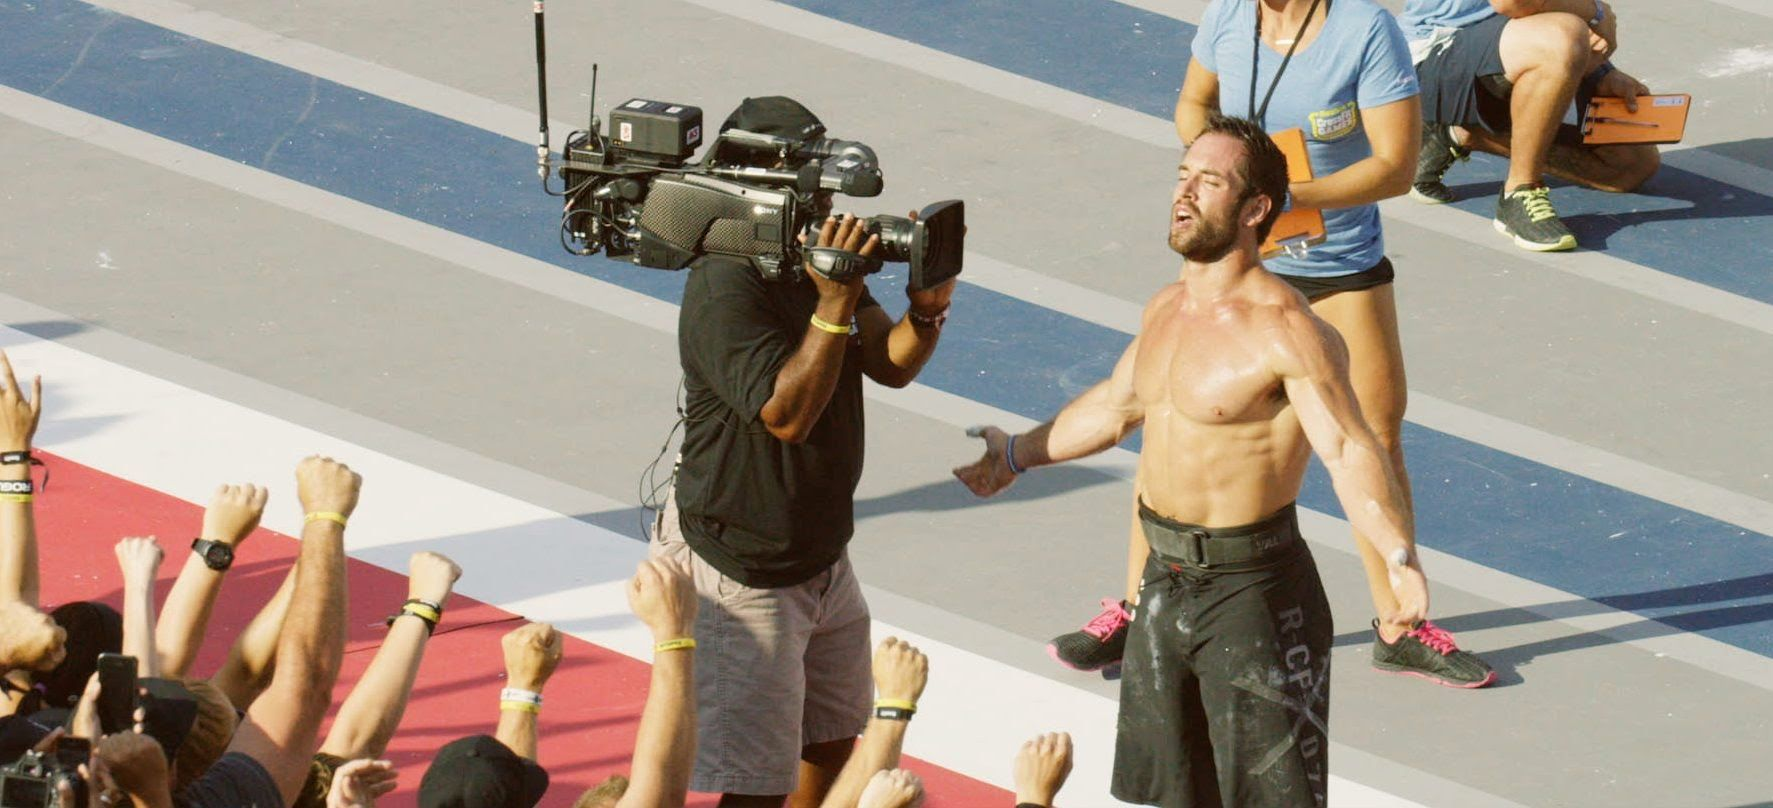 Rich Froning 2014 CrossFit Games Champion Rich froning